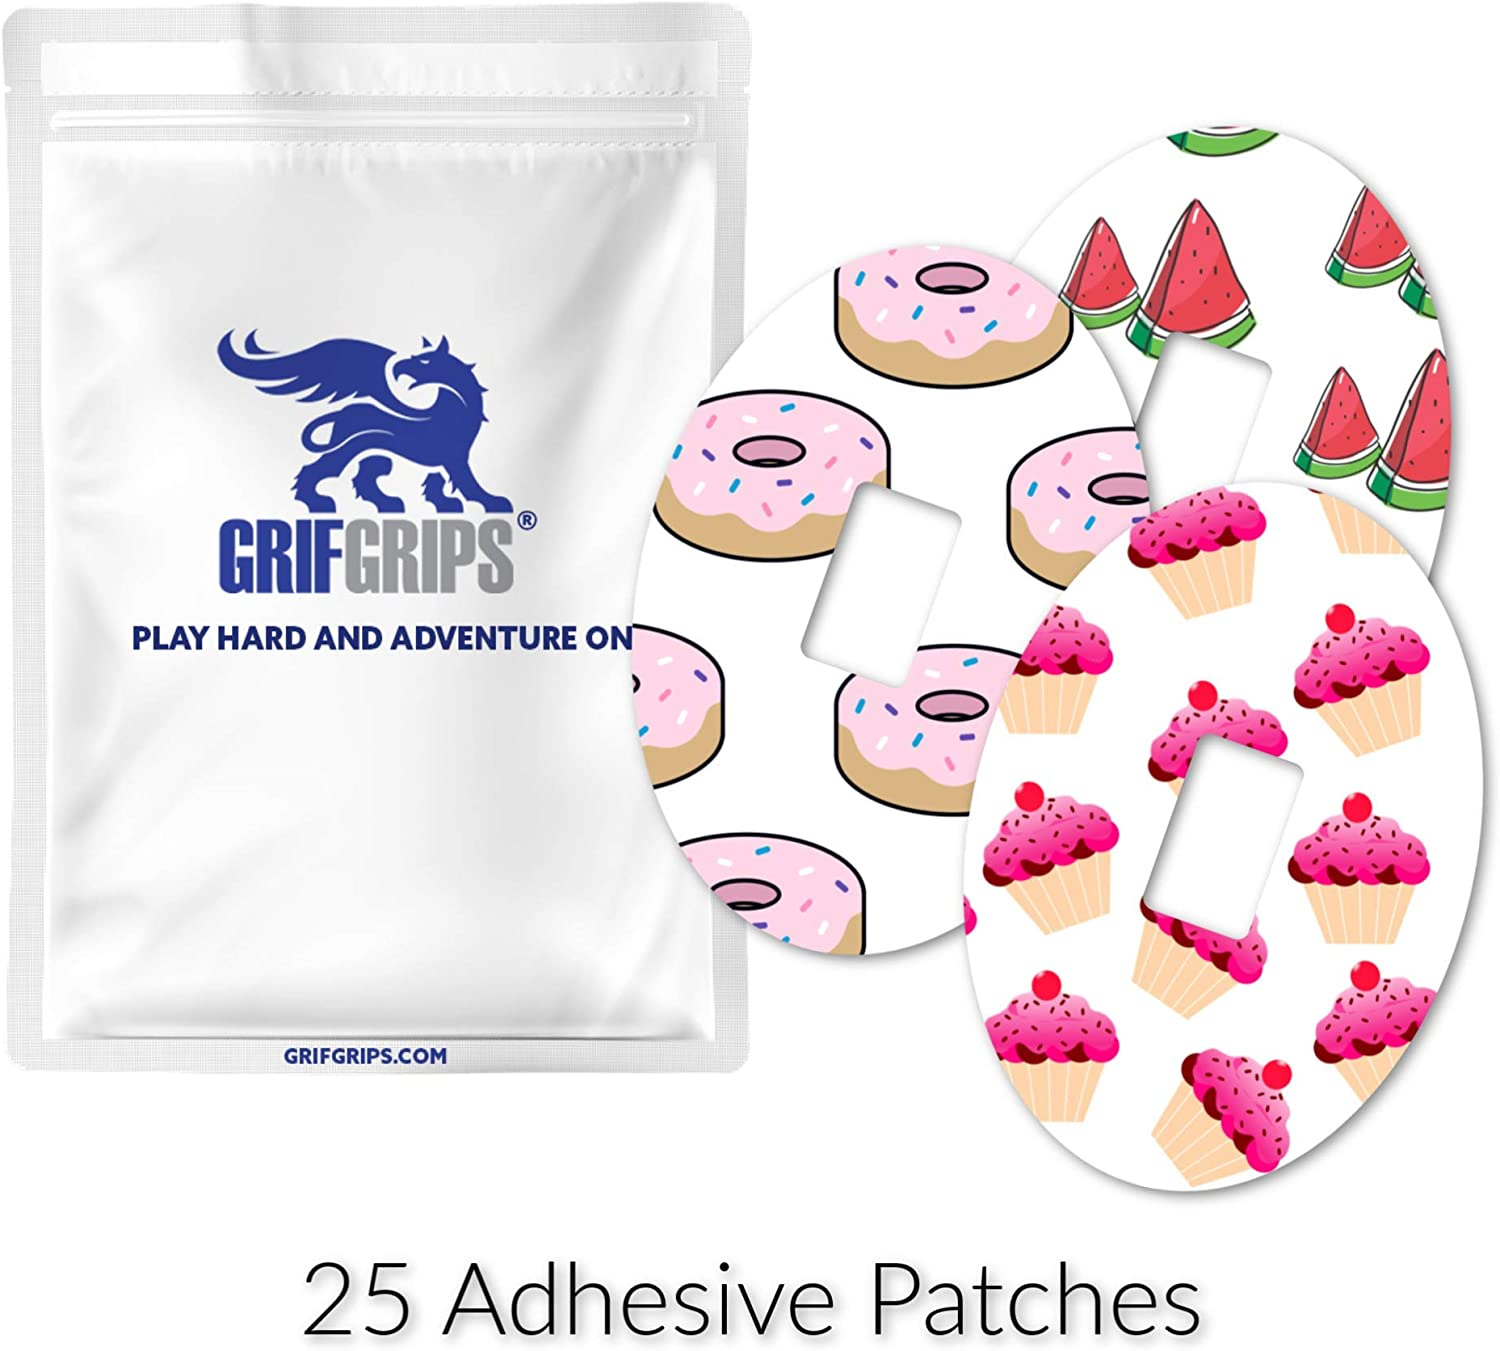 GrifGrips Extreme - Dexcom G4 and G5 Oval Cuts (Pack of 25)